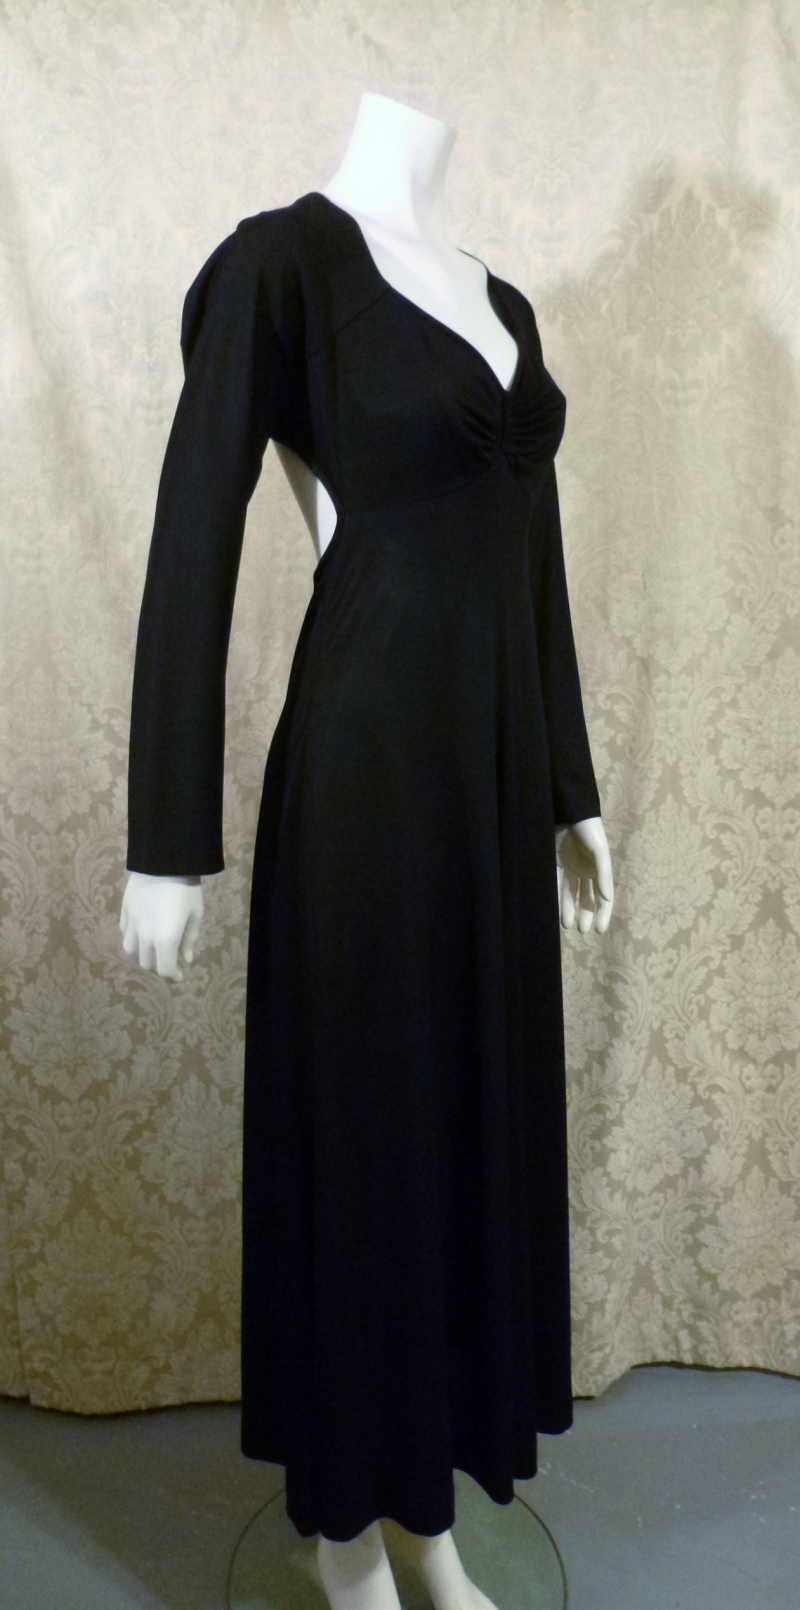 Vintage 1970s Mr. Boots Limited Edition plunging back backless black dress gown mireille darc style (9)